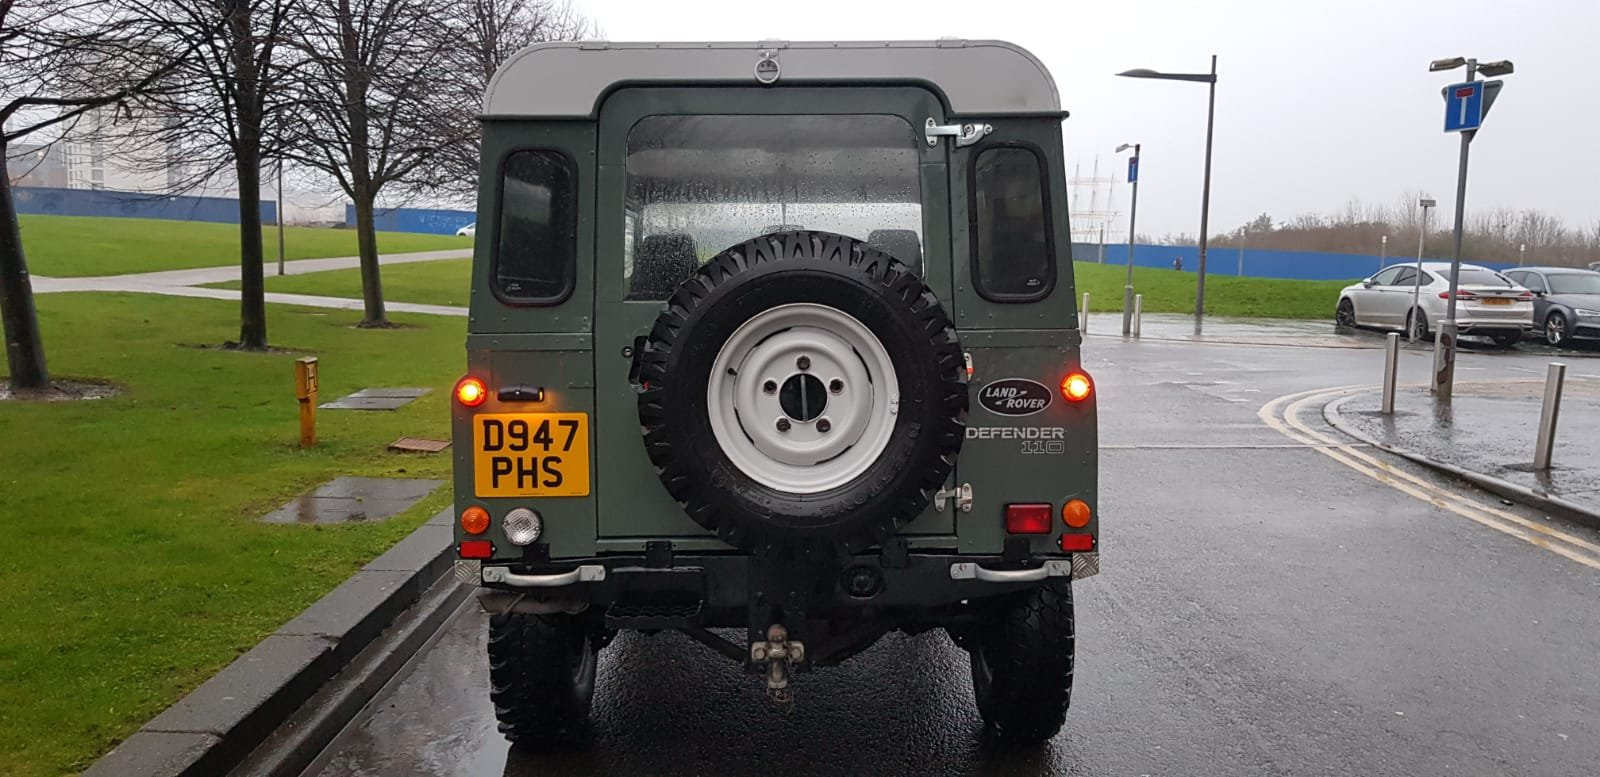 1986 Fully refurbished110 landrover For Sale (picture 11 of 12)